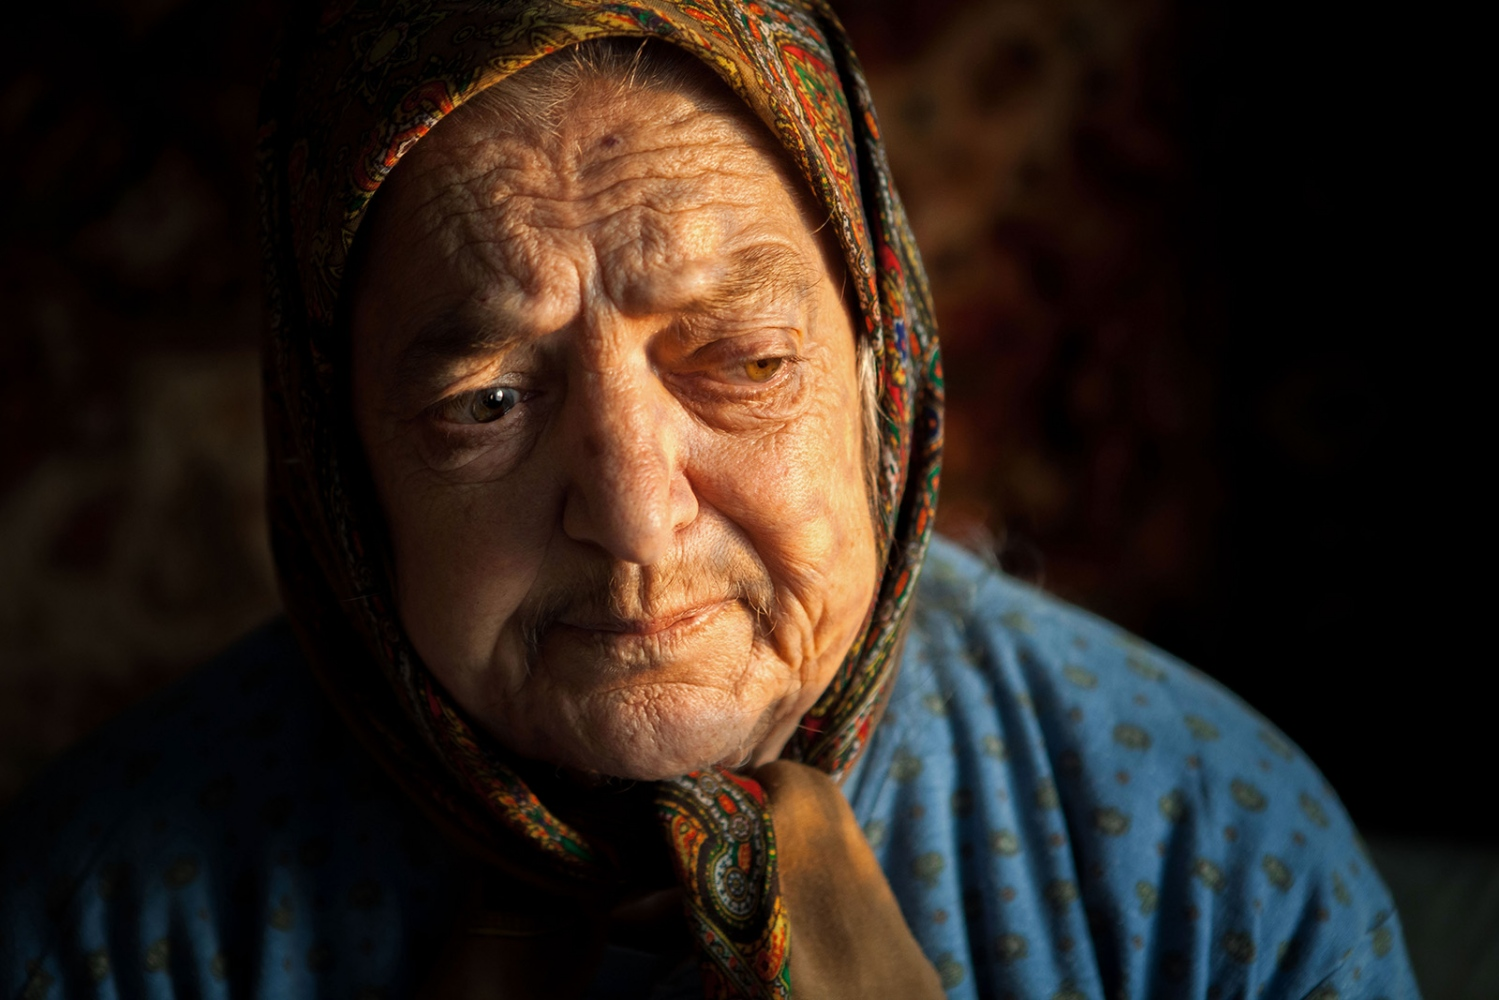 "Pasha, an elderly woman living in the rural Moldovan village of Vadeni, sits in the warm evening sunlight, as we talk about her life in the single, small room she inhabits everyday. Pasha can no longer walk due to extreme leg pain and is confined to her room in the small house she and her sister, Ana, share. She is frequently moved to tears as we discuss her exile to Kazahkstan, ""[The night we were deported] …they took us to the police station in Floresti (a nearby town to Vadeni, Pasha's home village, in the Northern region of Moldova). From there, they put us in a cattle car on a train. There was nothing inside. No toilet, no food, nothing, and thus we travelled for 2 months … some people died [during the journey], inside the train cars."" – Pasha Graur Across the former Soviet Union, millions of people were forcibly deported over the course of decades to the Eastern Soviet States of Kazakhstan and Siberia. This event is one of the longest and deadliest government campaigns in history. In Moldova, hundreds of thousands of people were deported, from 1939 to the early 1950's. The wave of deportations targeted intellectuals, large landowners, dissidents and, at times, regular people who had done nothing to provoke attack. The deportees were deemed ""Enemies of the People"", had their land and homes taken from them and redistributed to the Soviet state and were systematically shamed and silenced over the course of decades. Only recently has Moldova been willing to listen to the stories of deportees and try to understand the dark history of their country."